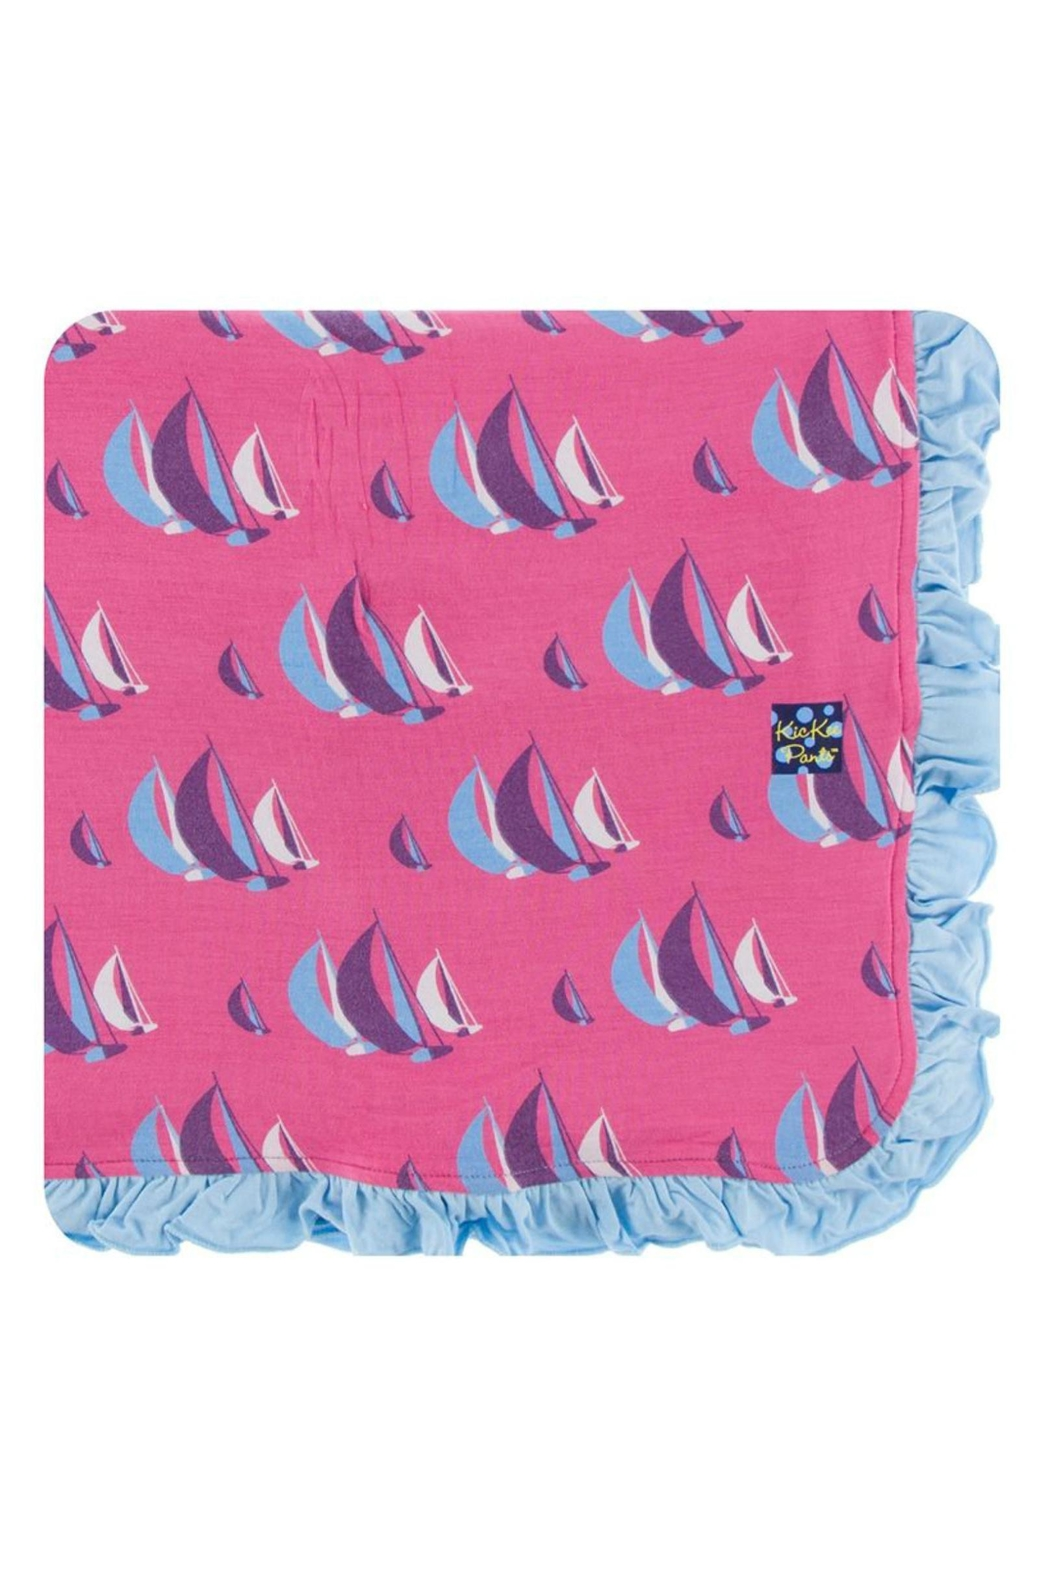 Kickee Pants Toddler Blanket Perth - Main Image